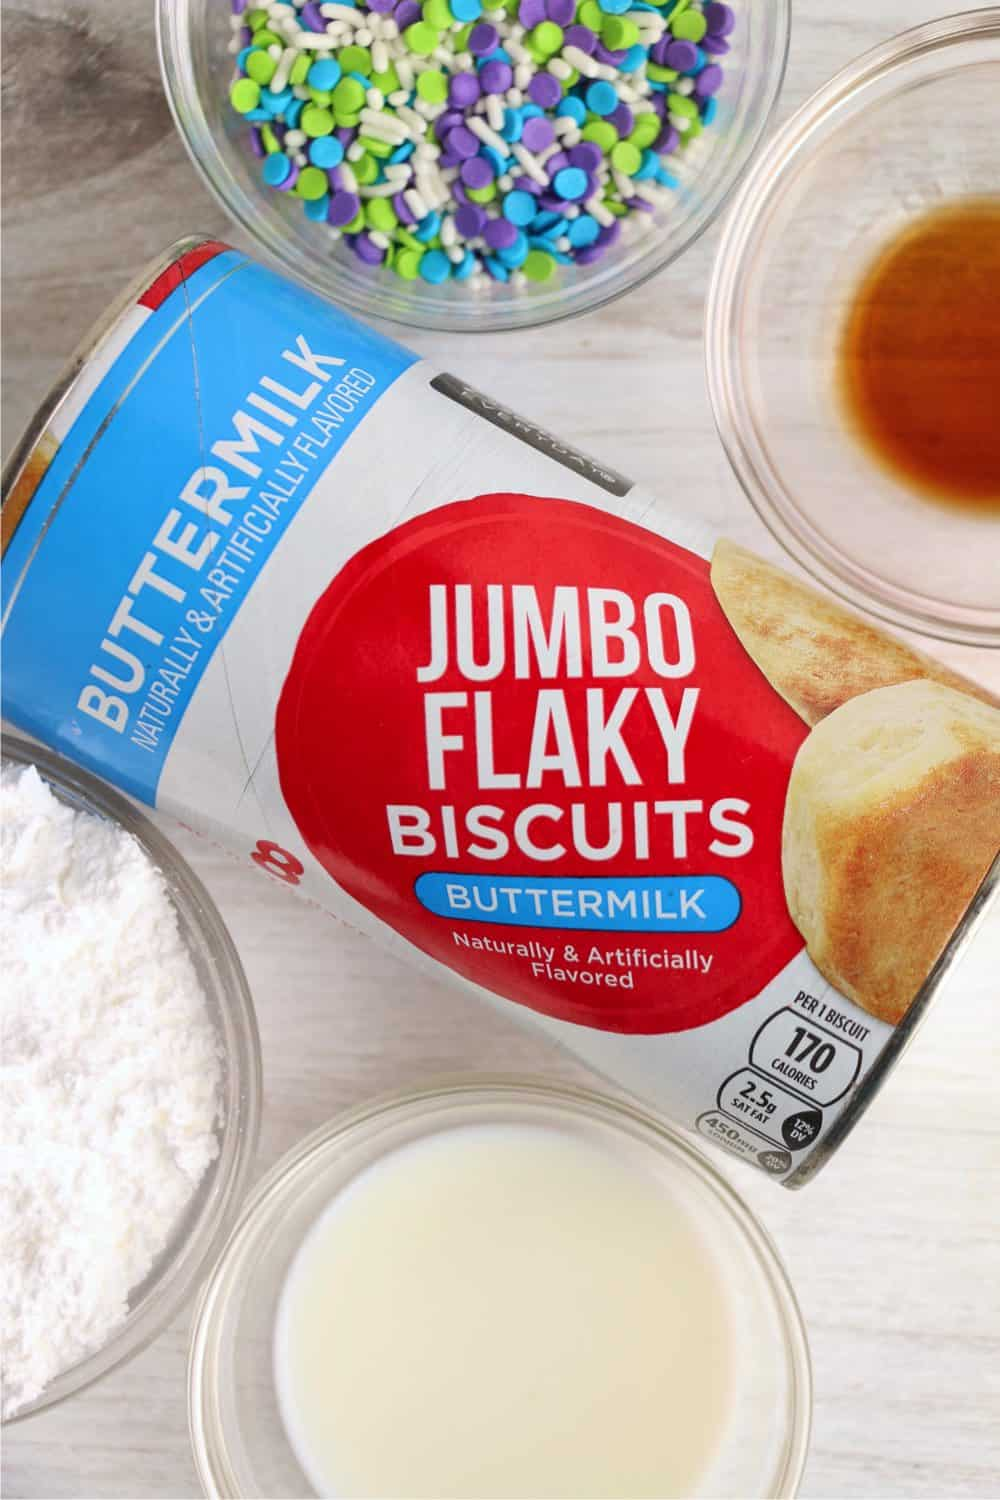 Ingredients for air fryer donuts from buscuits: refrigerated biscuits, powdered sugar, milk, vanilla, sprinkles